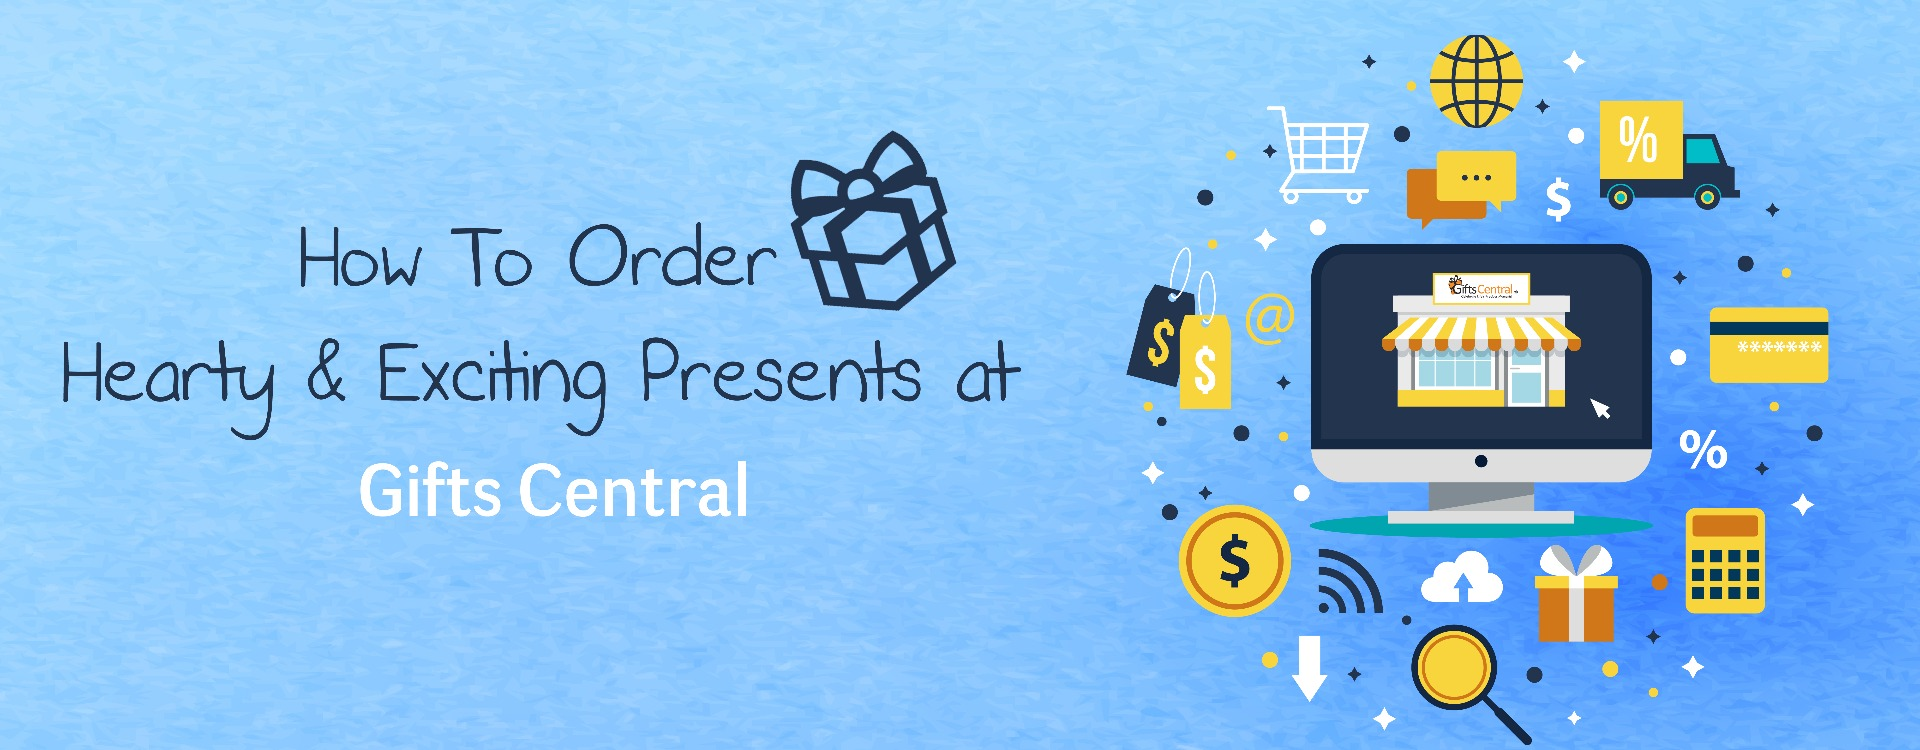 HOW TO ORDER HEARTY & EXCITING PRESENTS AT GIFTS CENTRAL